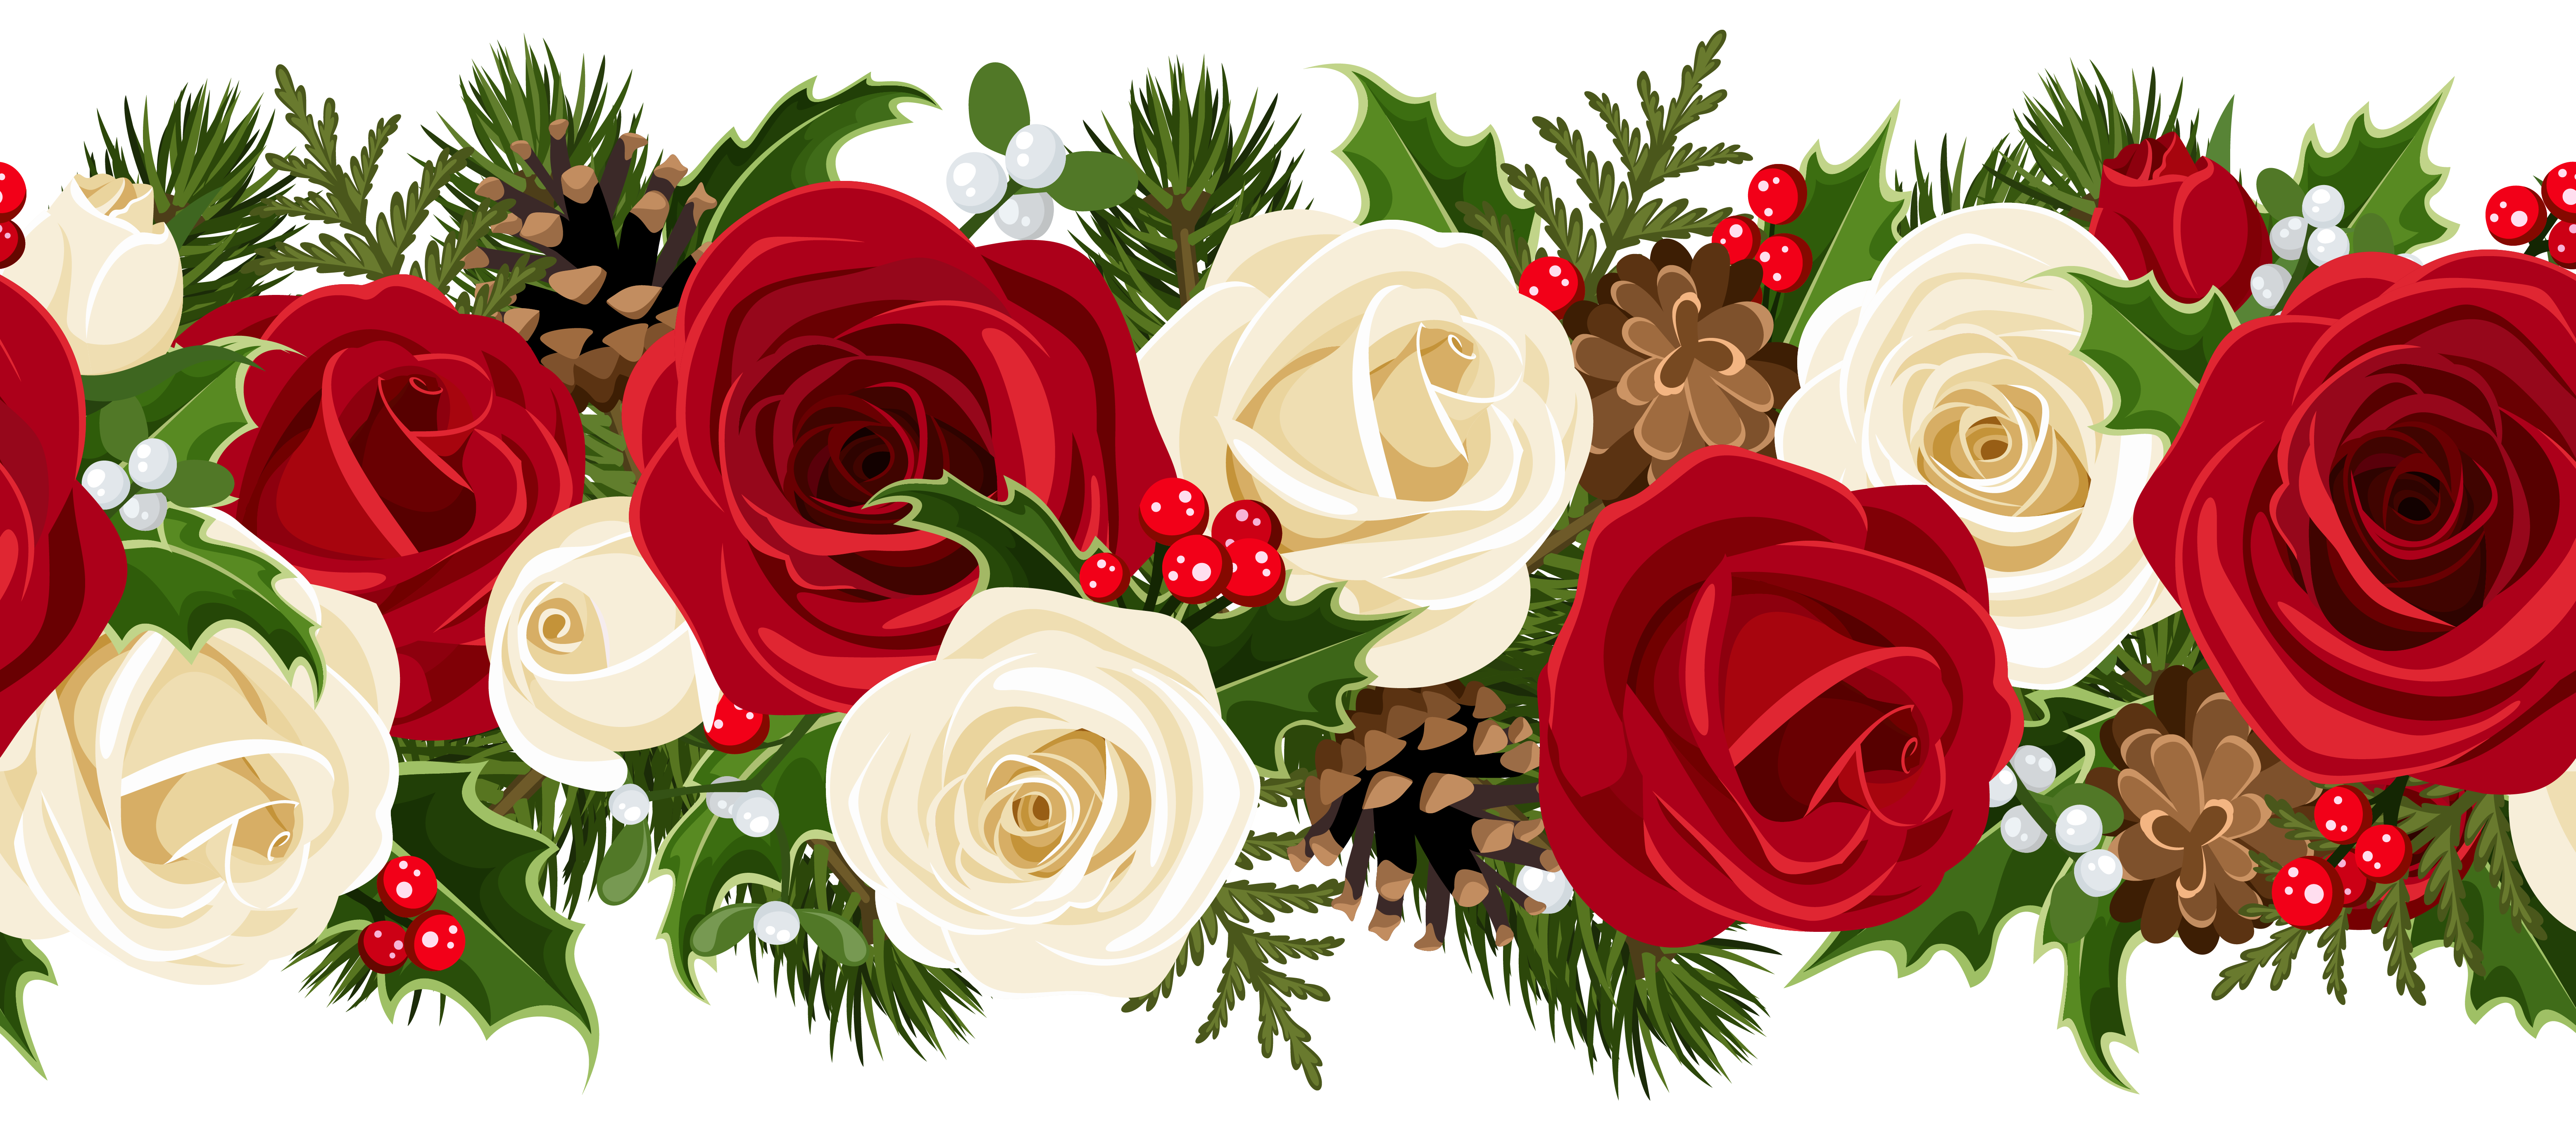 Christmas roses clipart #2